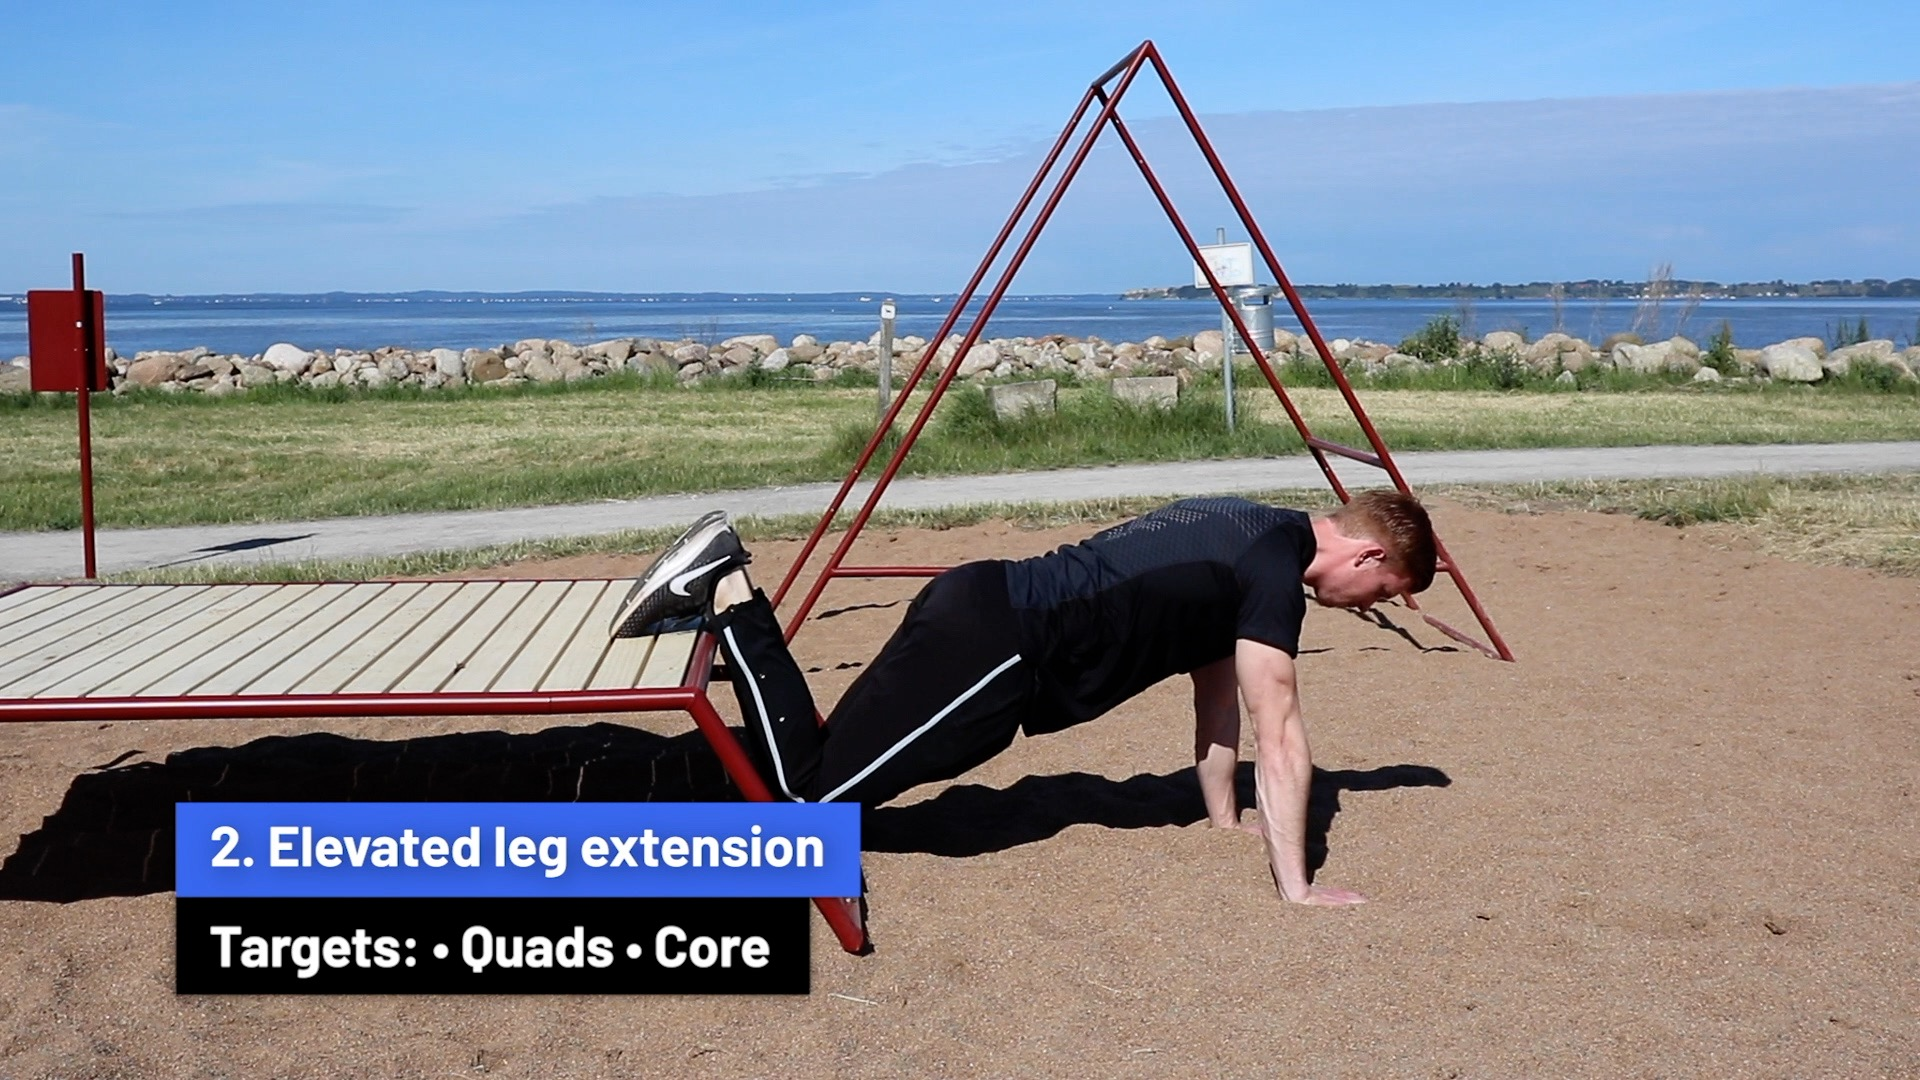 Elevated leg extensions